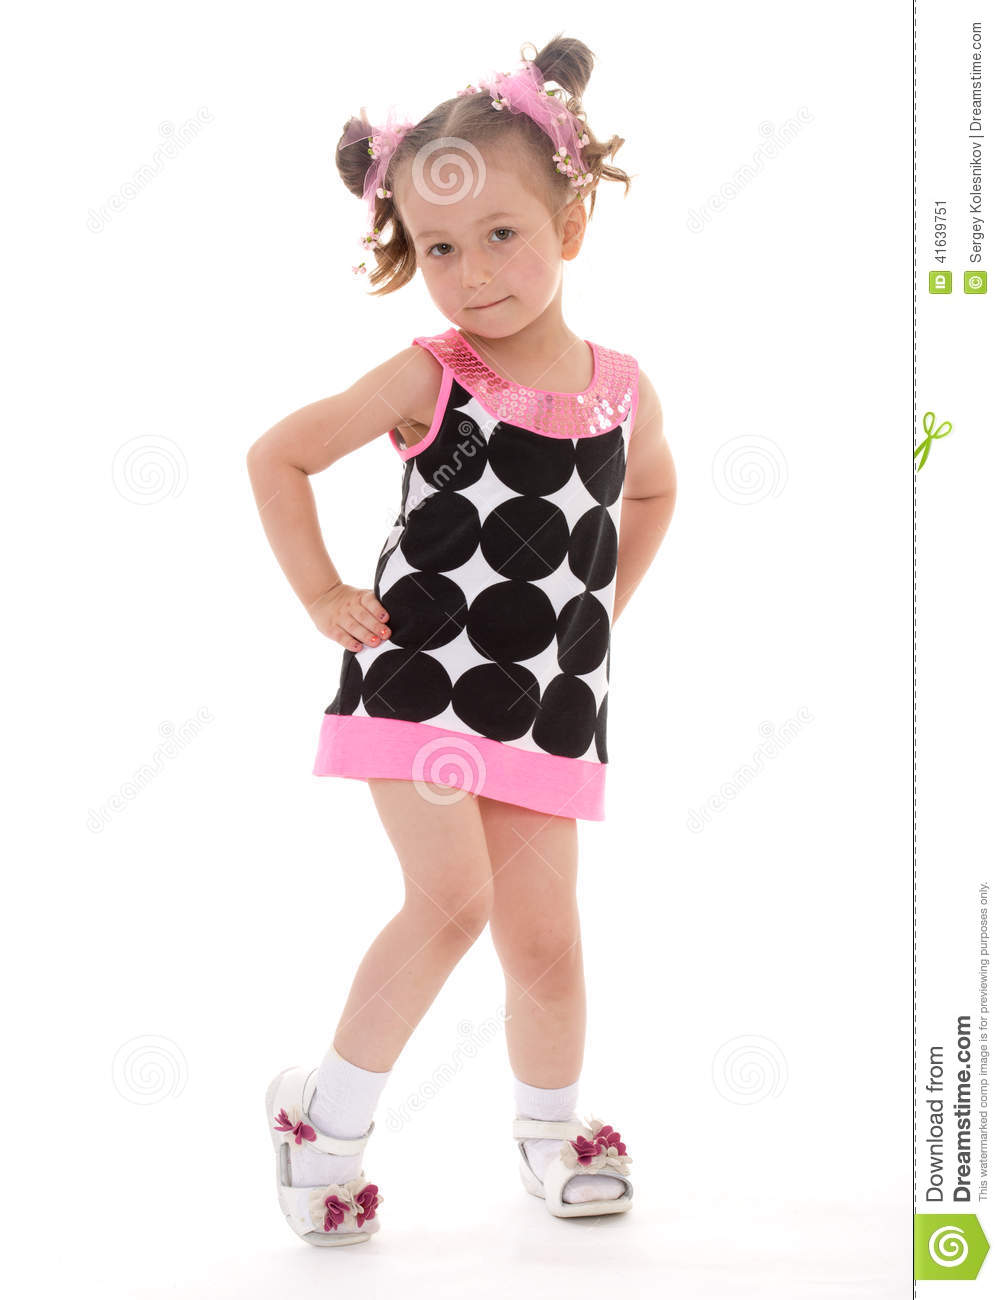 Consider, that very young little girls dress pity, that